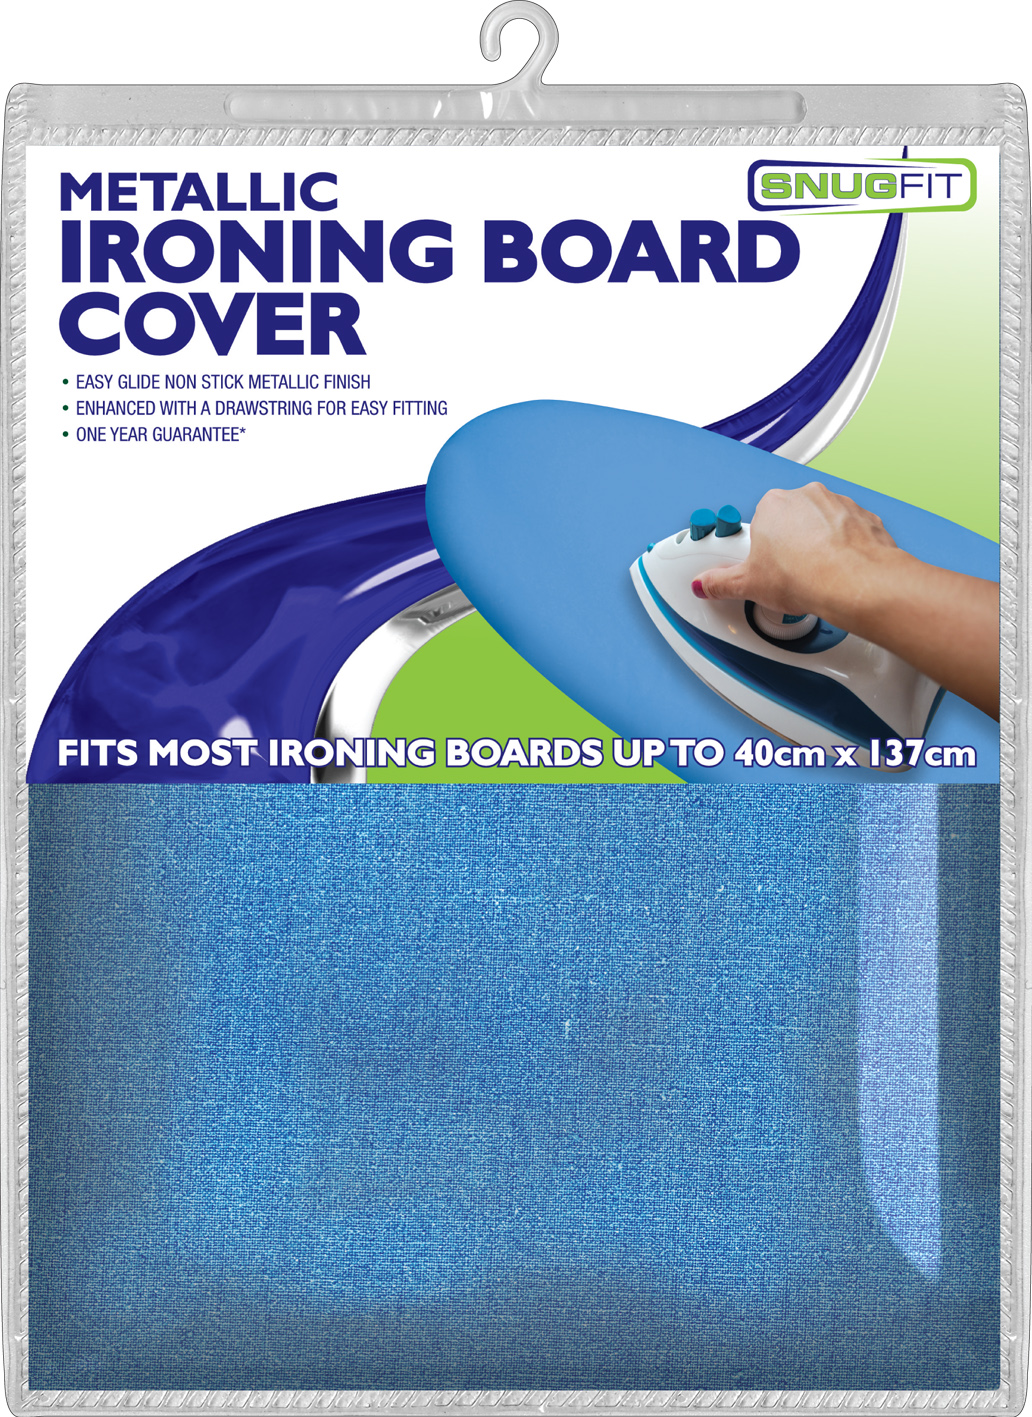 ironing board covers metallic snug fit blue